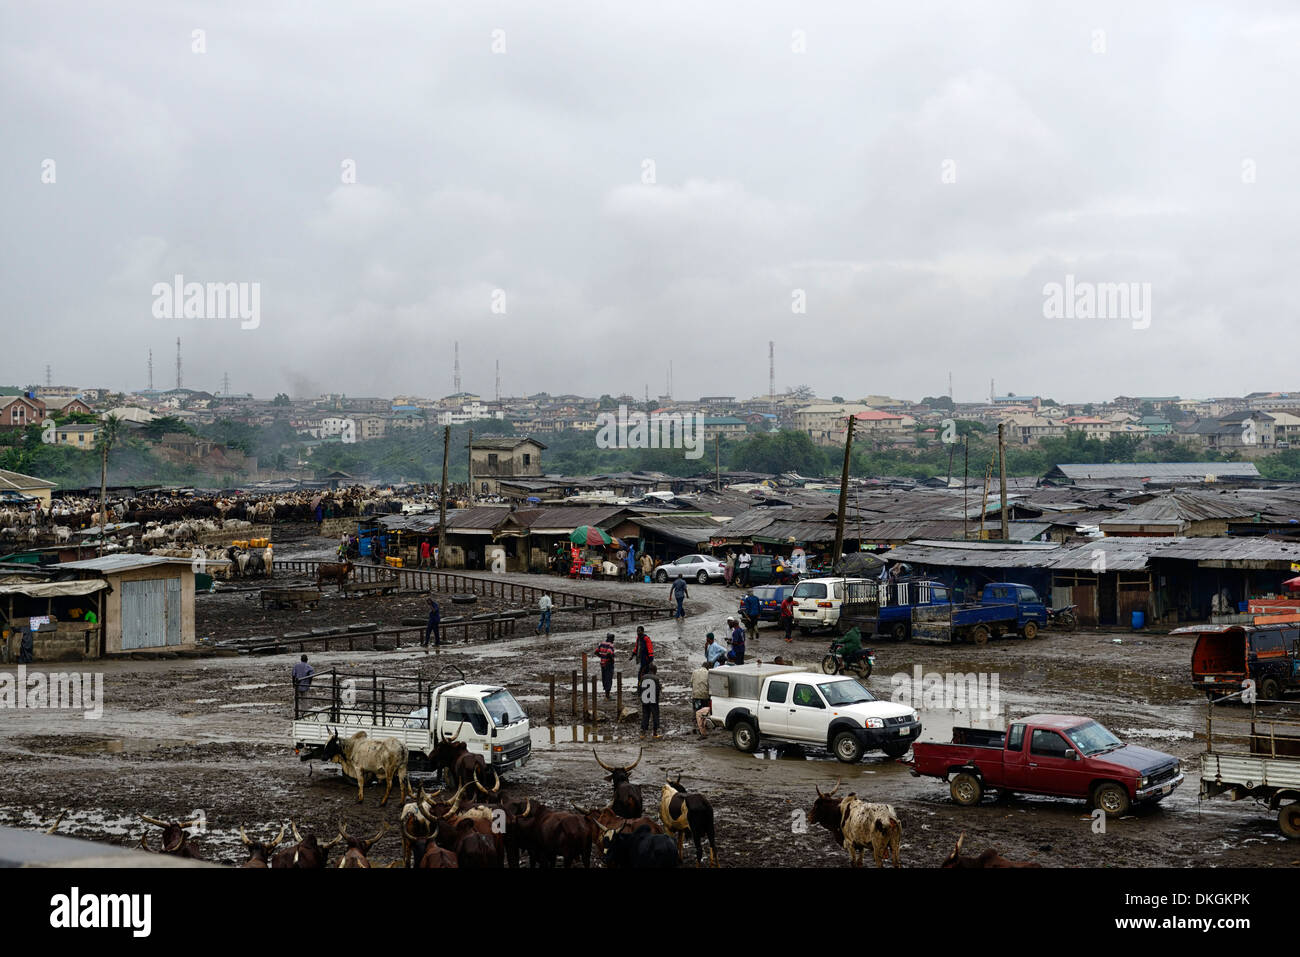 lagos cattle mart market commodity trade trading sell selling sellers crude primitive unhygienic poor standard - Stock Image